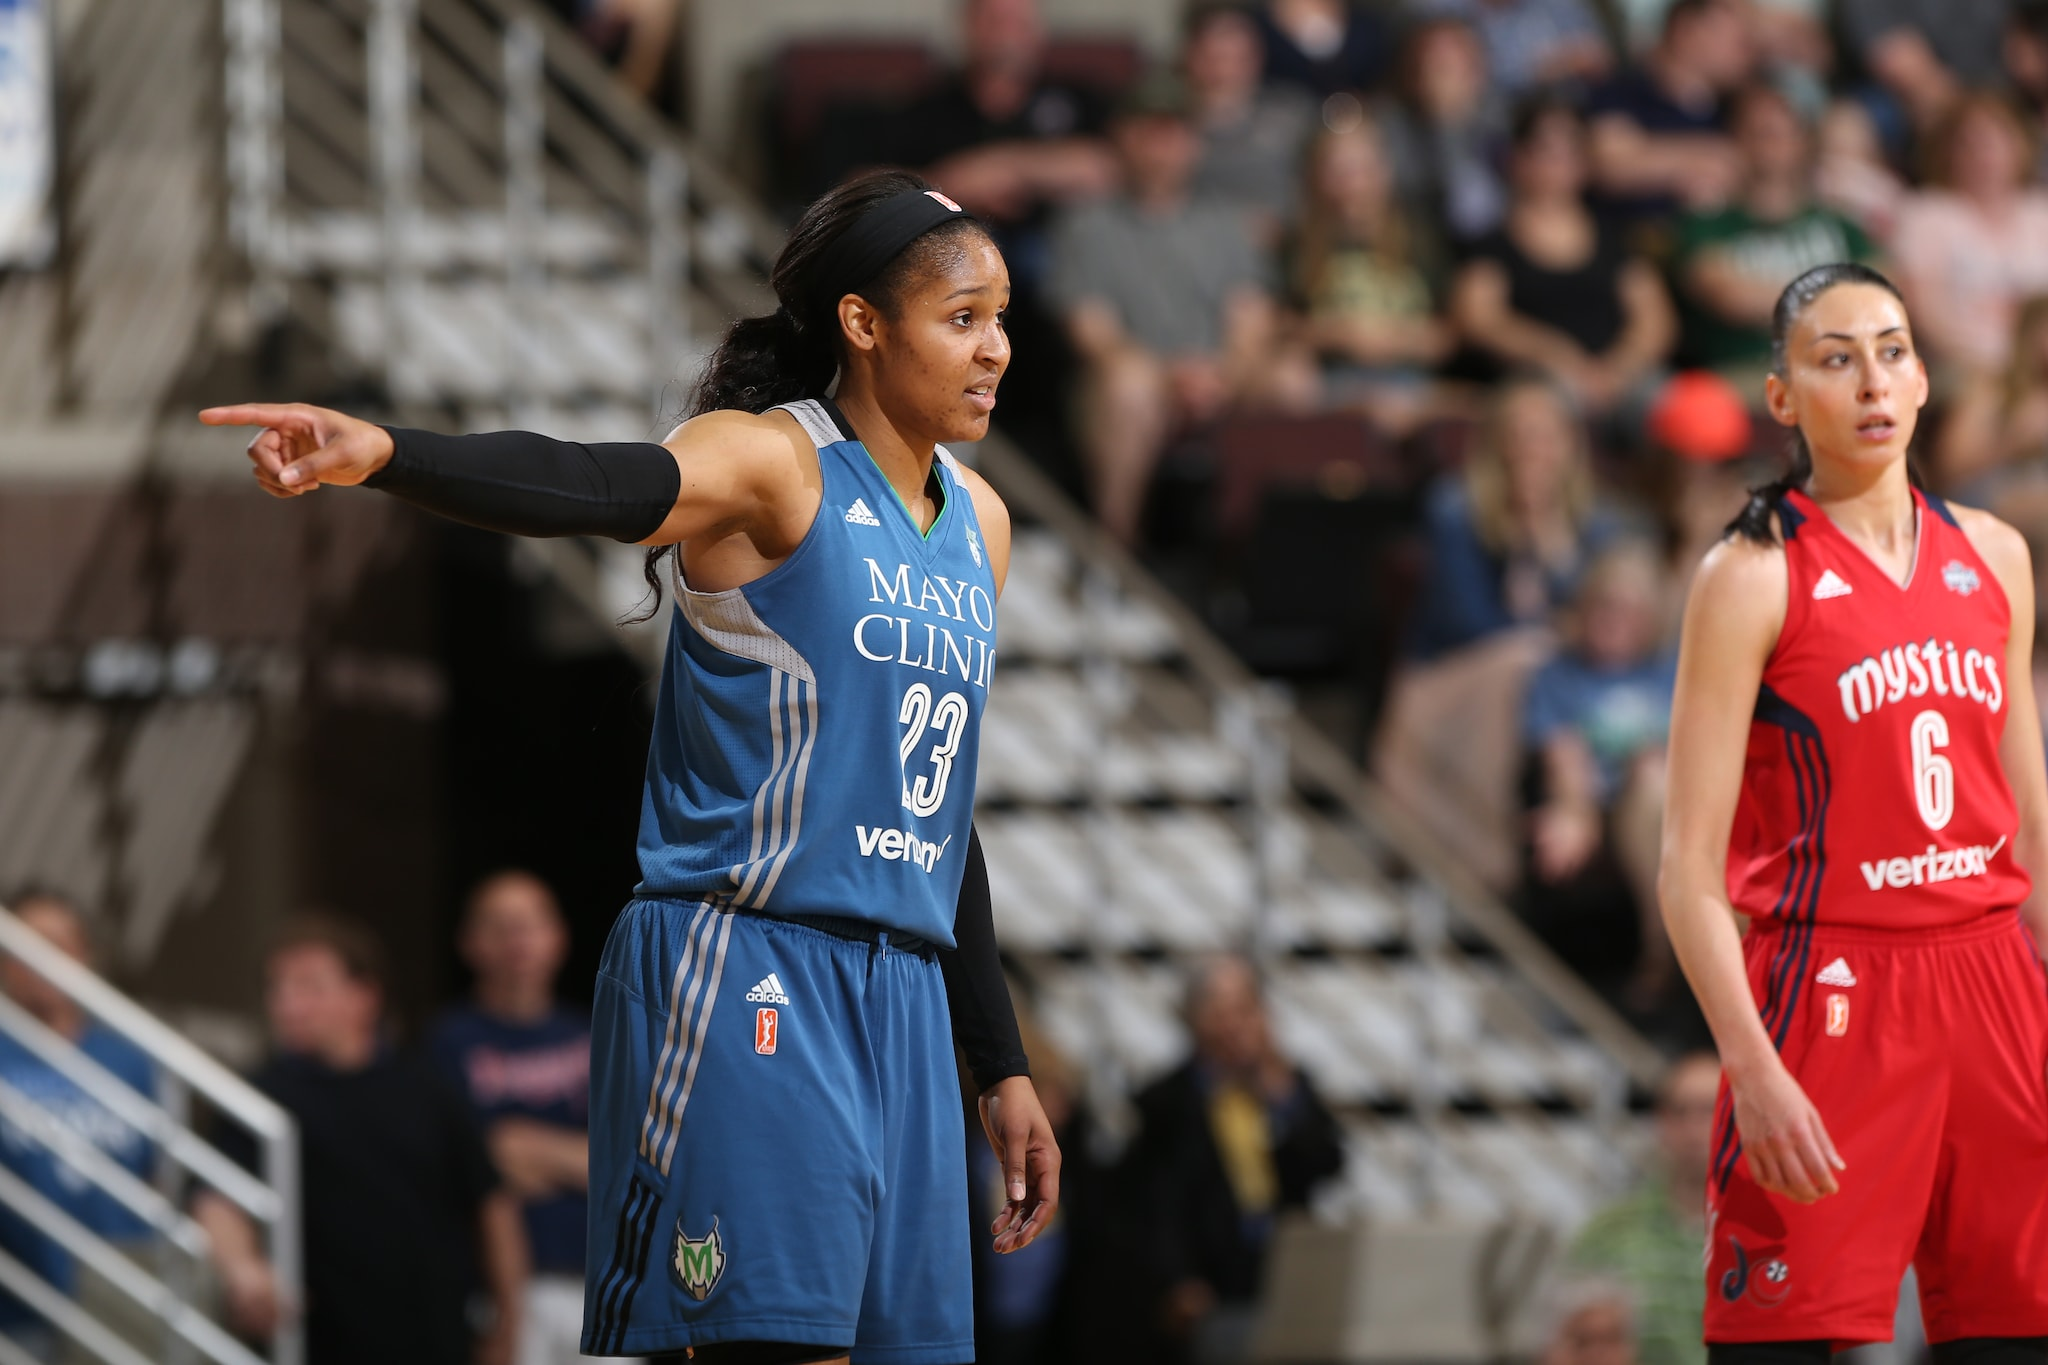 ROCHESTER, MN - MAY 8: Maya Moore #23 of the Minnesota Lynx reacts during the preseason game against the Washington Mystics on May 8, 2016 at the Mayo Civic Center in Rochester, Minnesota. NOTE TO USER: User expressly acknowledges and agrees that, by downloading and or using this Photograph, user is consenting to the terms and conditions of the Getty Images License Agreement. Mandatory Copyright Notice: Copyright 2016 NBAE (Photo by David Sherman/NBAE via Getty Images)